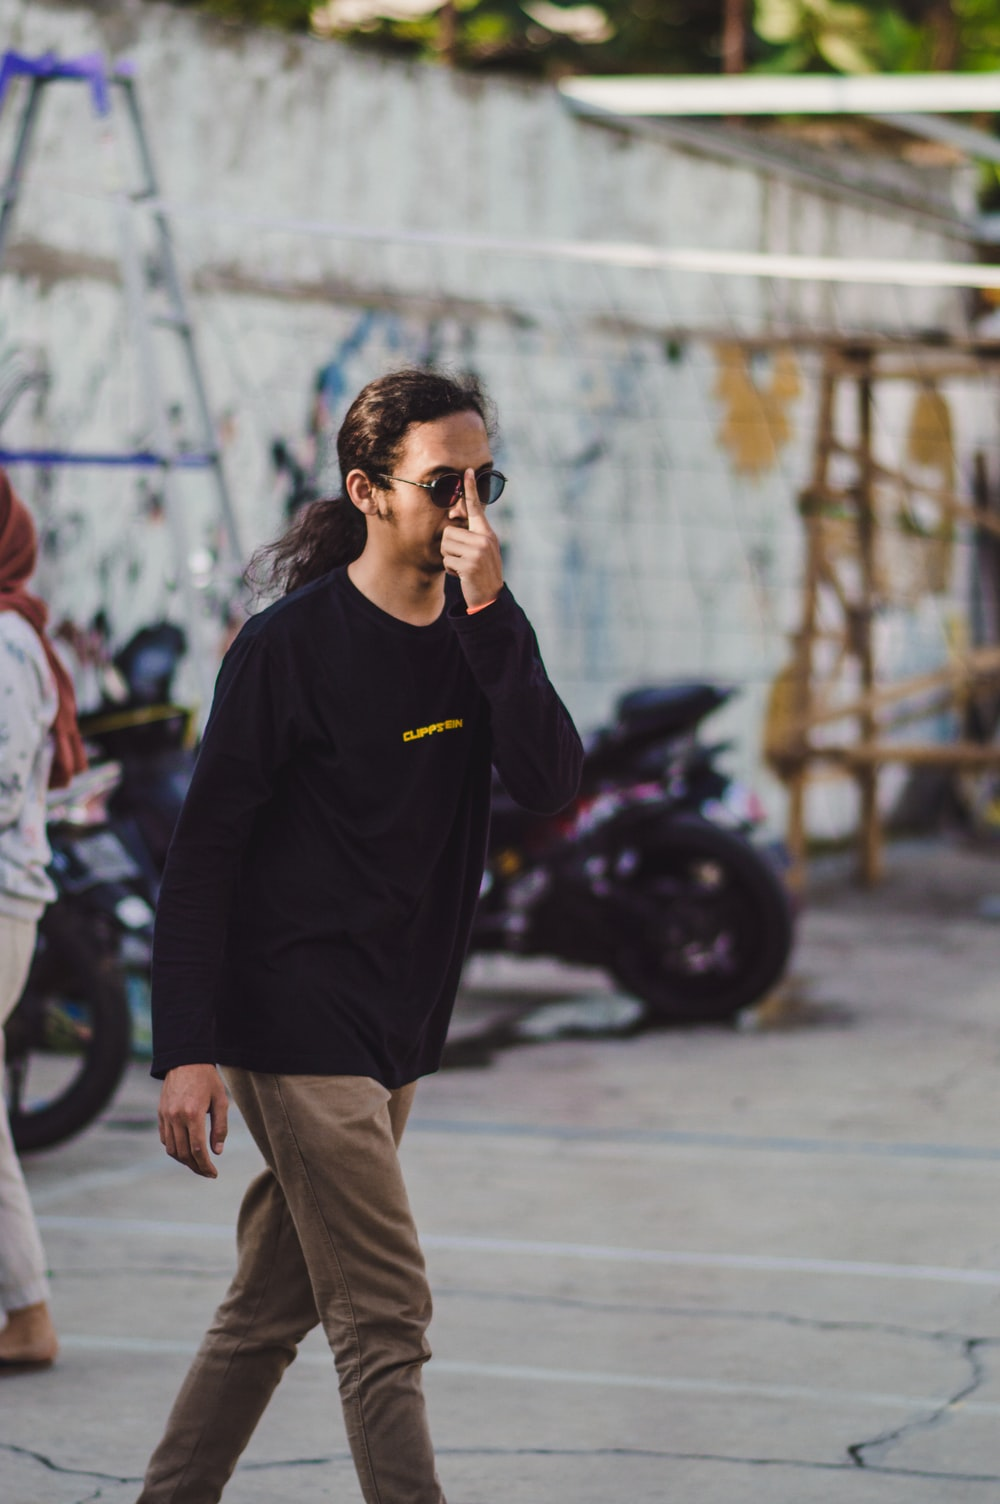 man in black crew neck t-shirt and brown pants wearing black sunglasses standing on gray